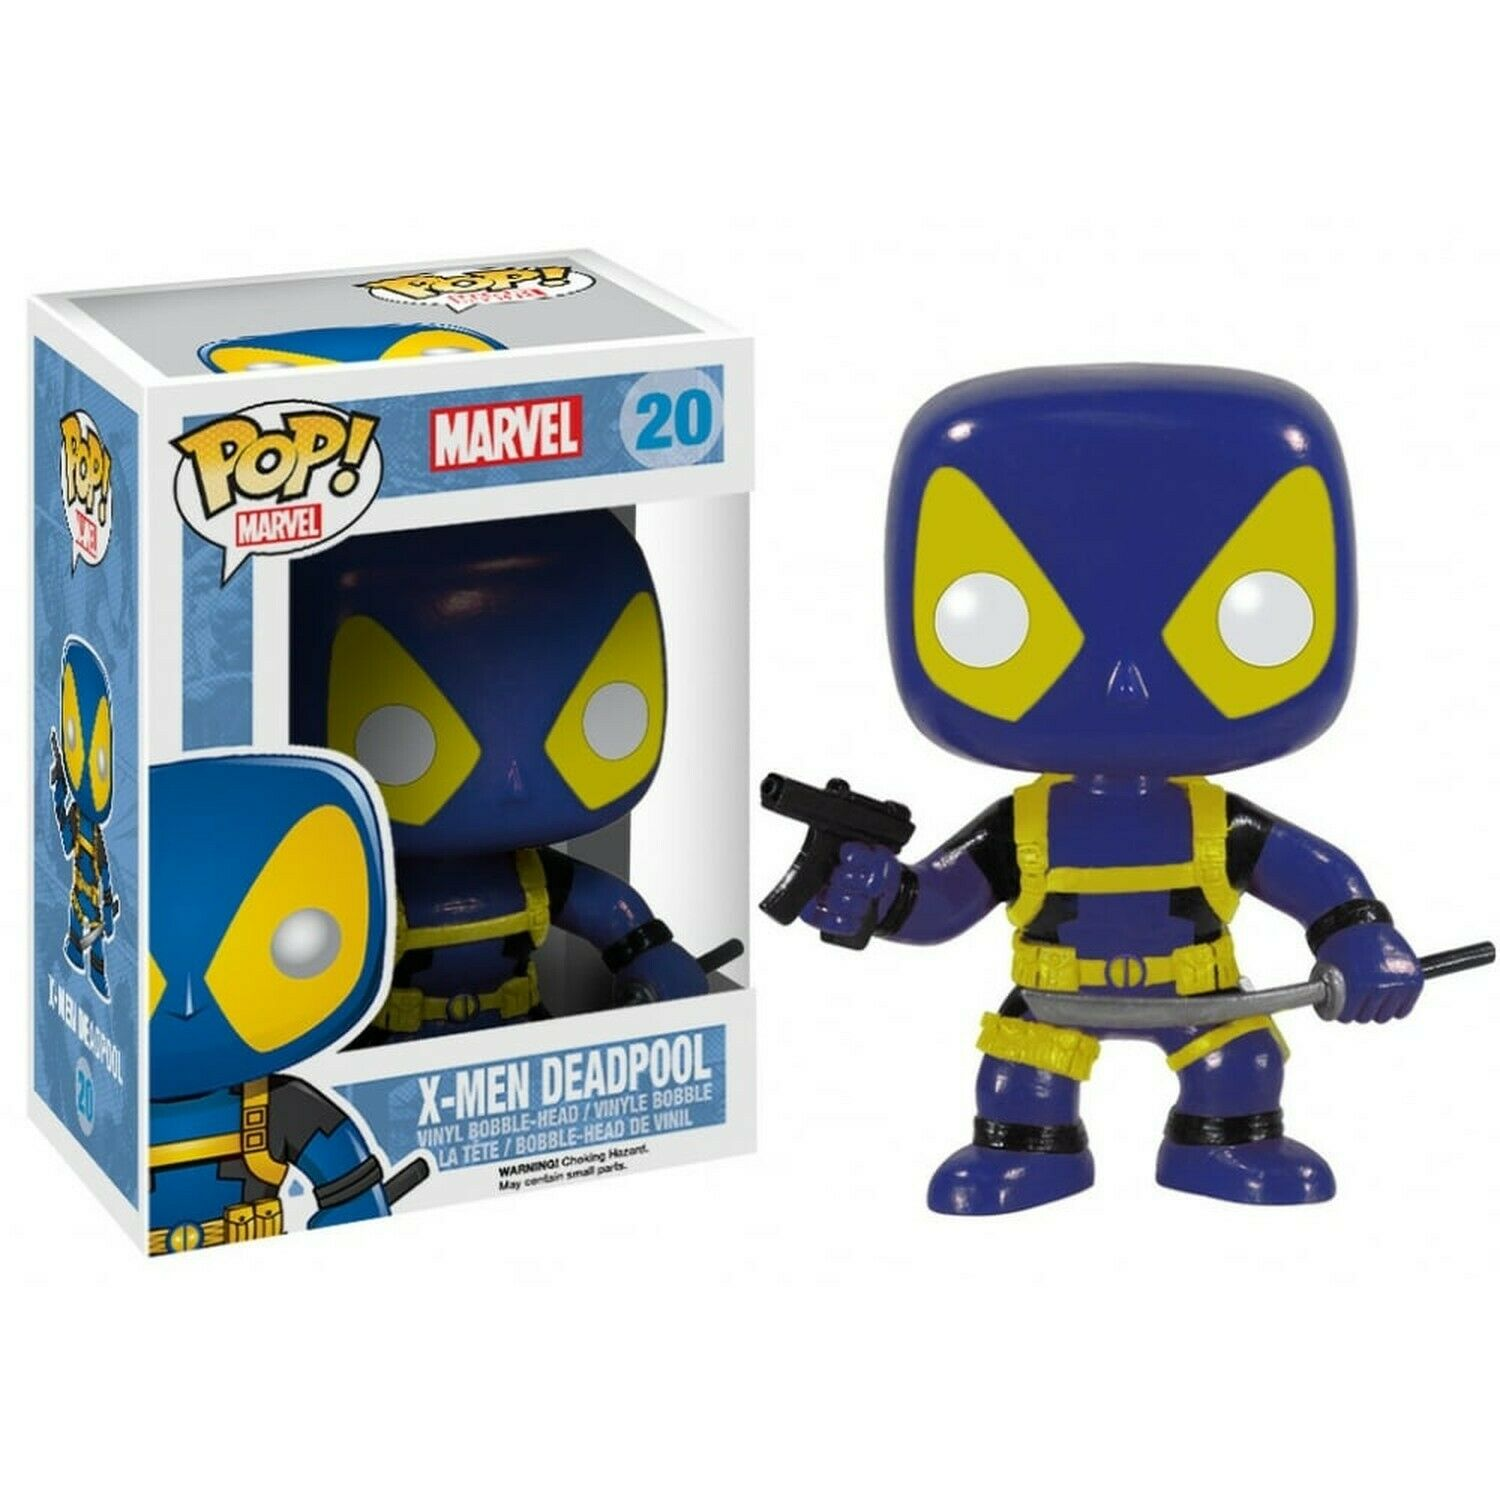 MARVEL - BOBBLE HEAD POP N° 20 - X-MEN DEADPOOL